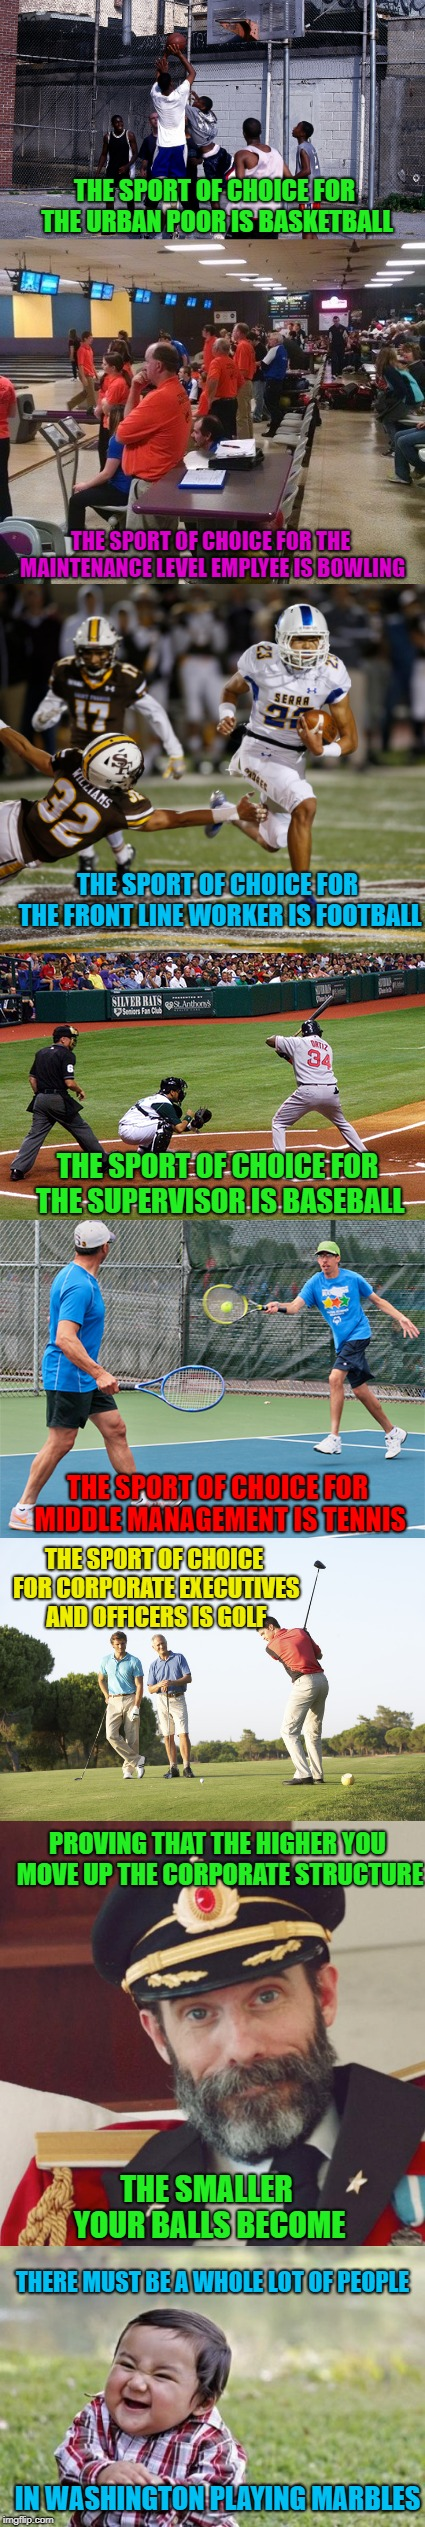 Where do you fit in? | THE SPORT OF CHOICE FOR THE URBAN POOR IS BASKETBALL THE SPORT OF CHOICE FOR THE MAINTENANCE LEVEL EMPLYEE IS BOWLING THE SPORT OF CHOICE FO | image tagged in memes,evil toddler,corporate ladder,funny,sports,balls | made w/ Imgflip meme maker